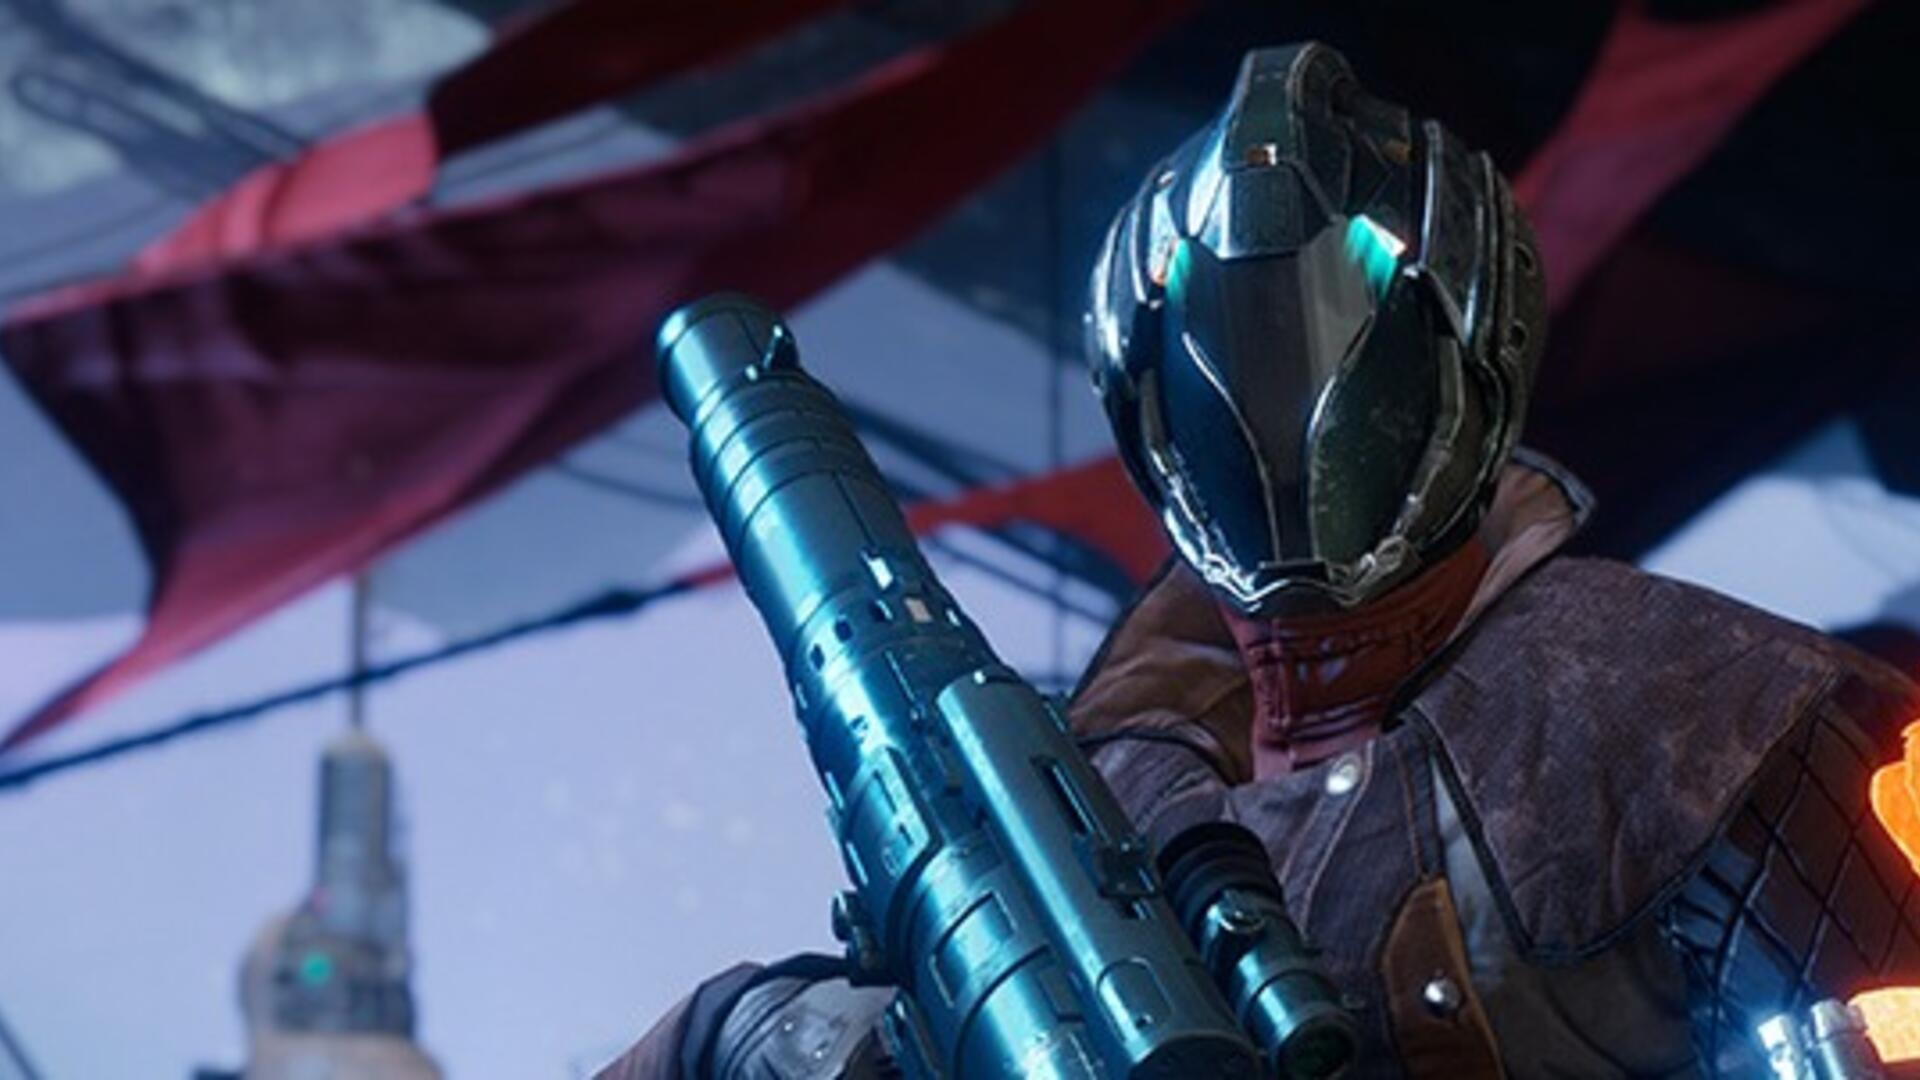 Bungie Acknowledges that the Sleeper Simulant is OP in Destiny 2's Gambit Mode